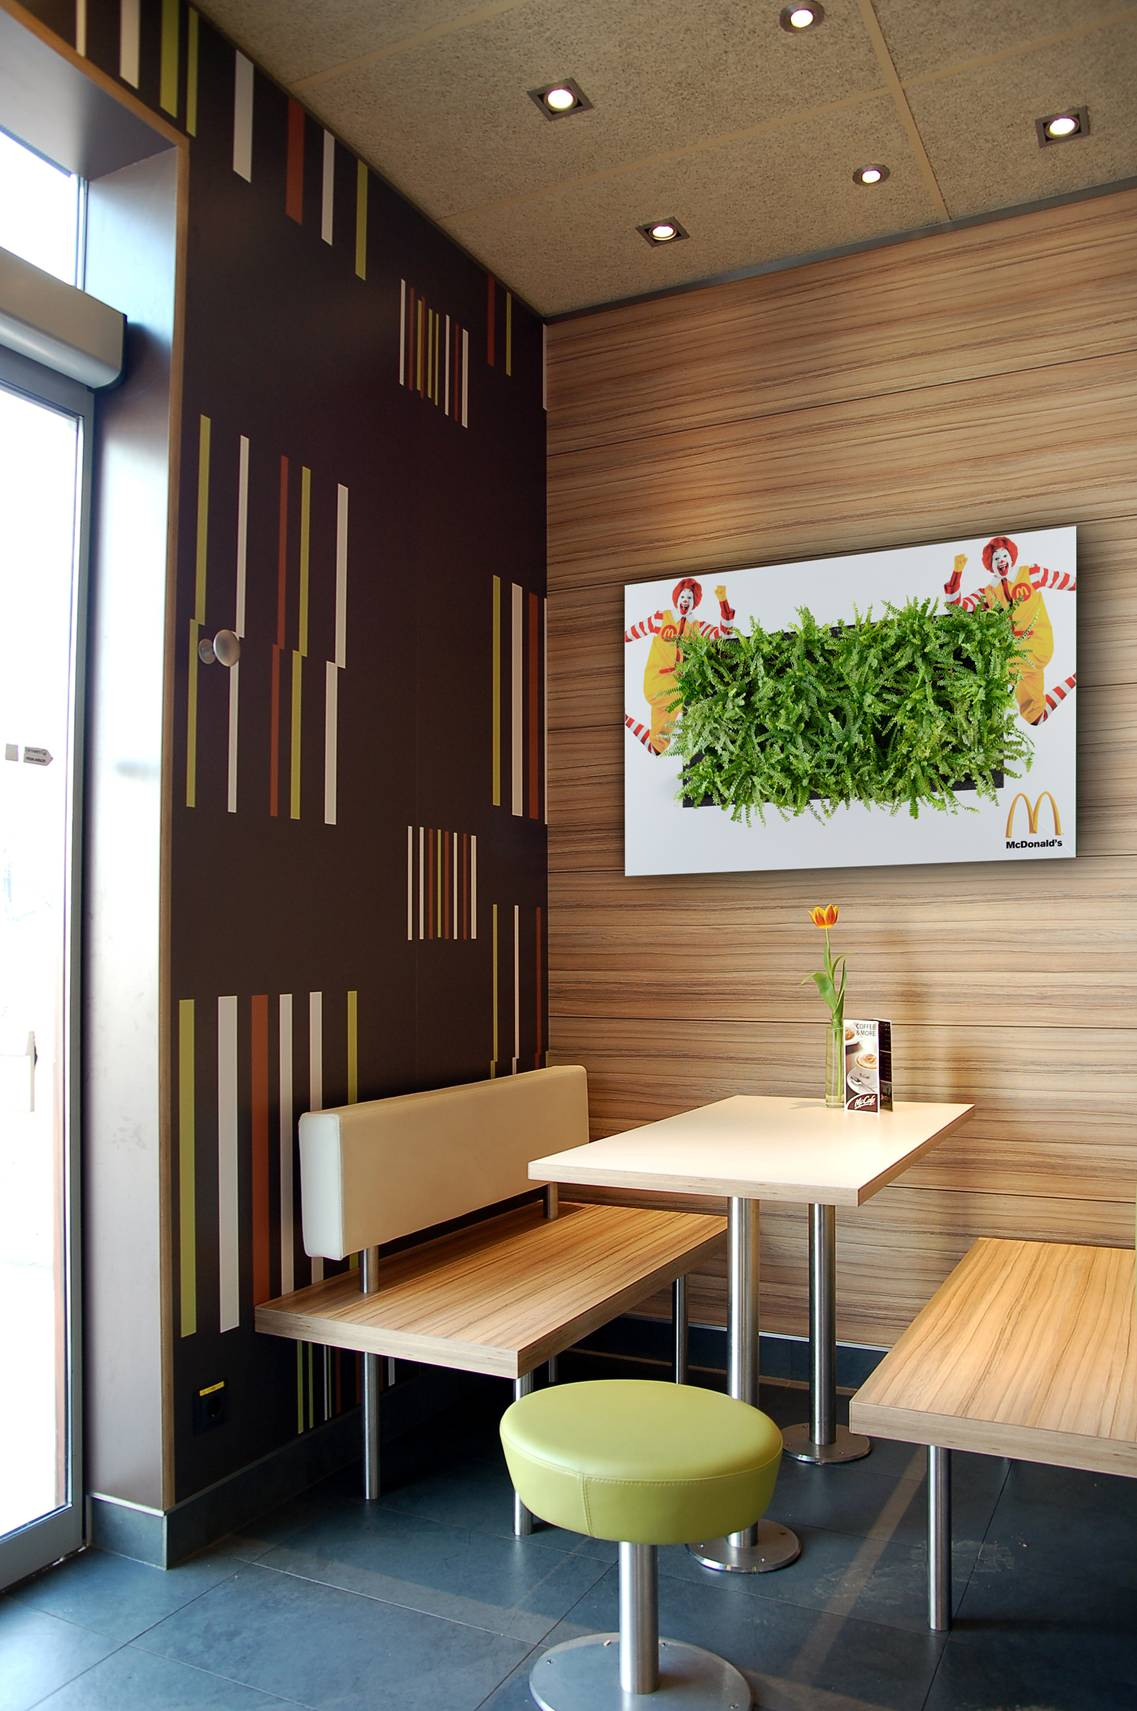 Vertical Gardens Can Be Customized!